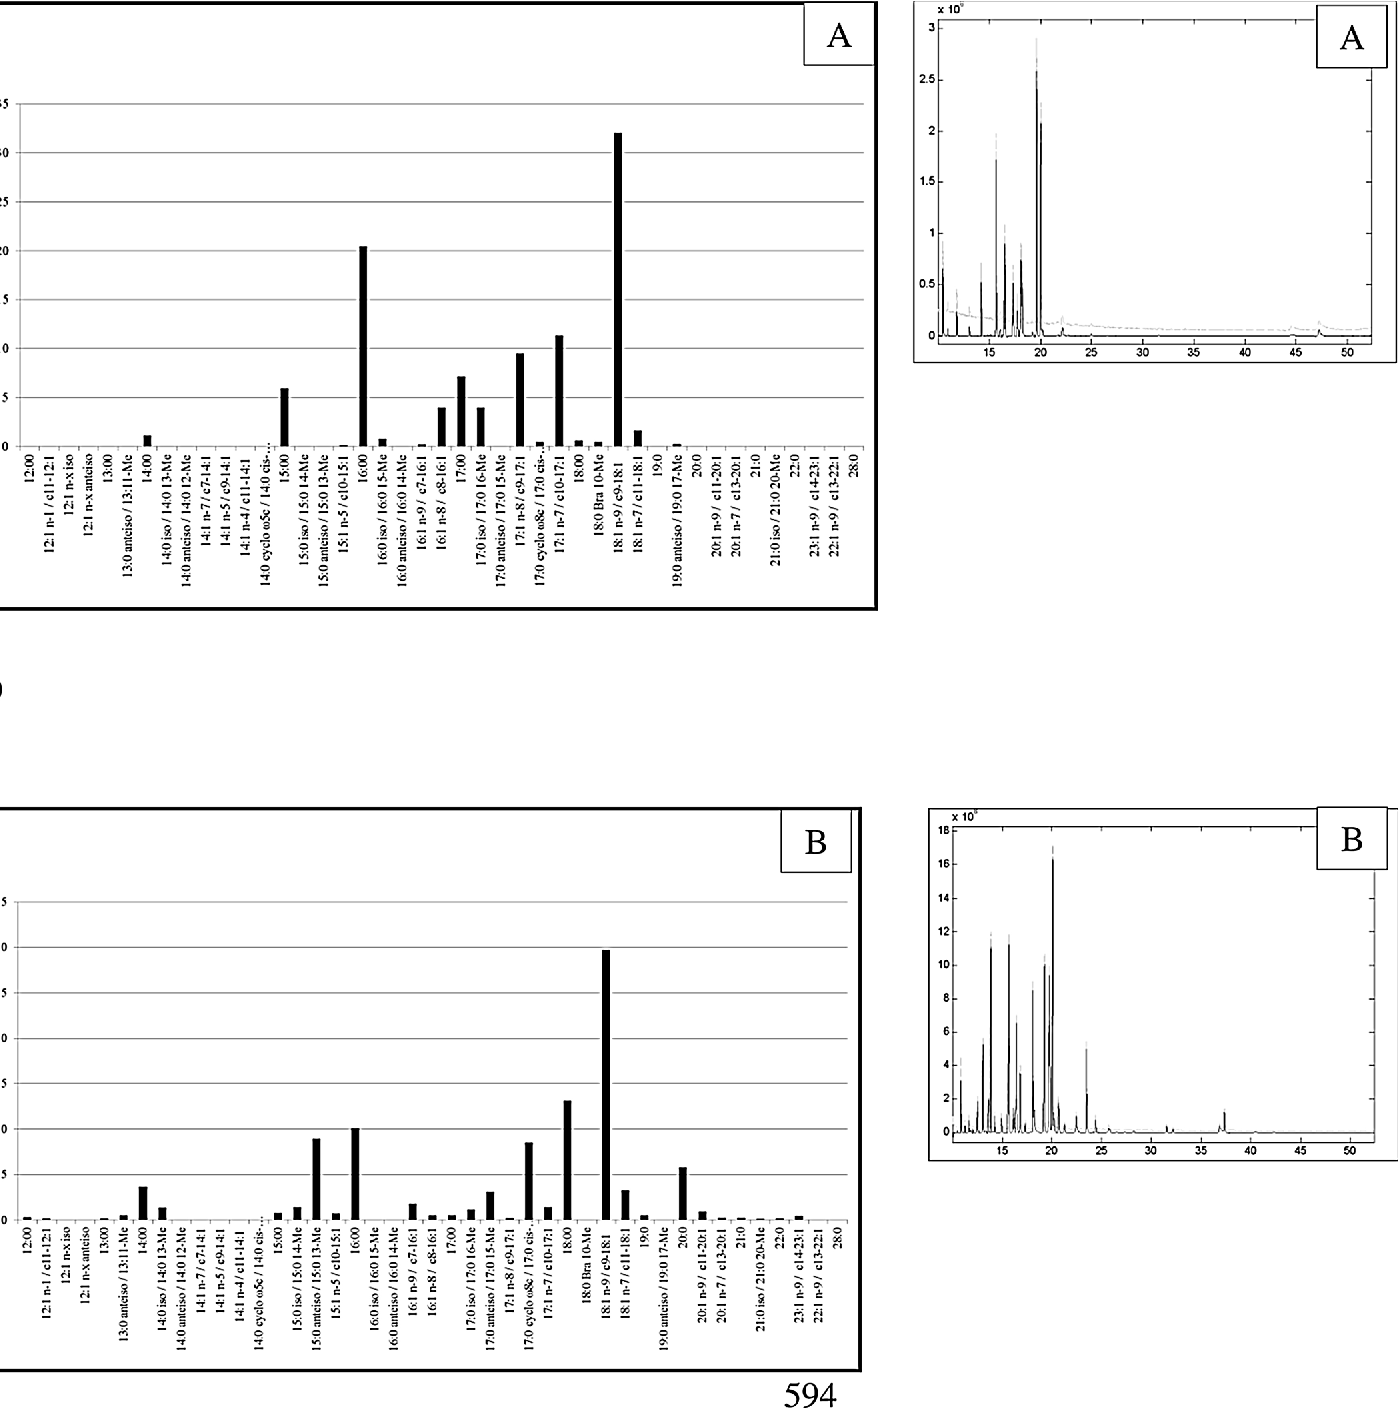 Figure 3 From Fatty Acids In Bacterium Dietzia Sp Grown On Simple Pd Fig The Gcms Chromatograms Of Fa Profile For Incubations